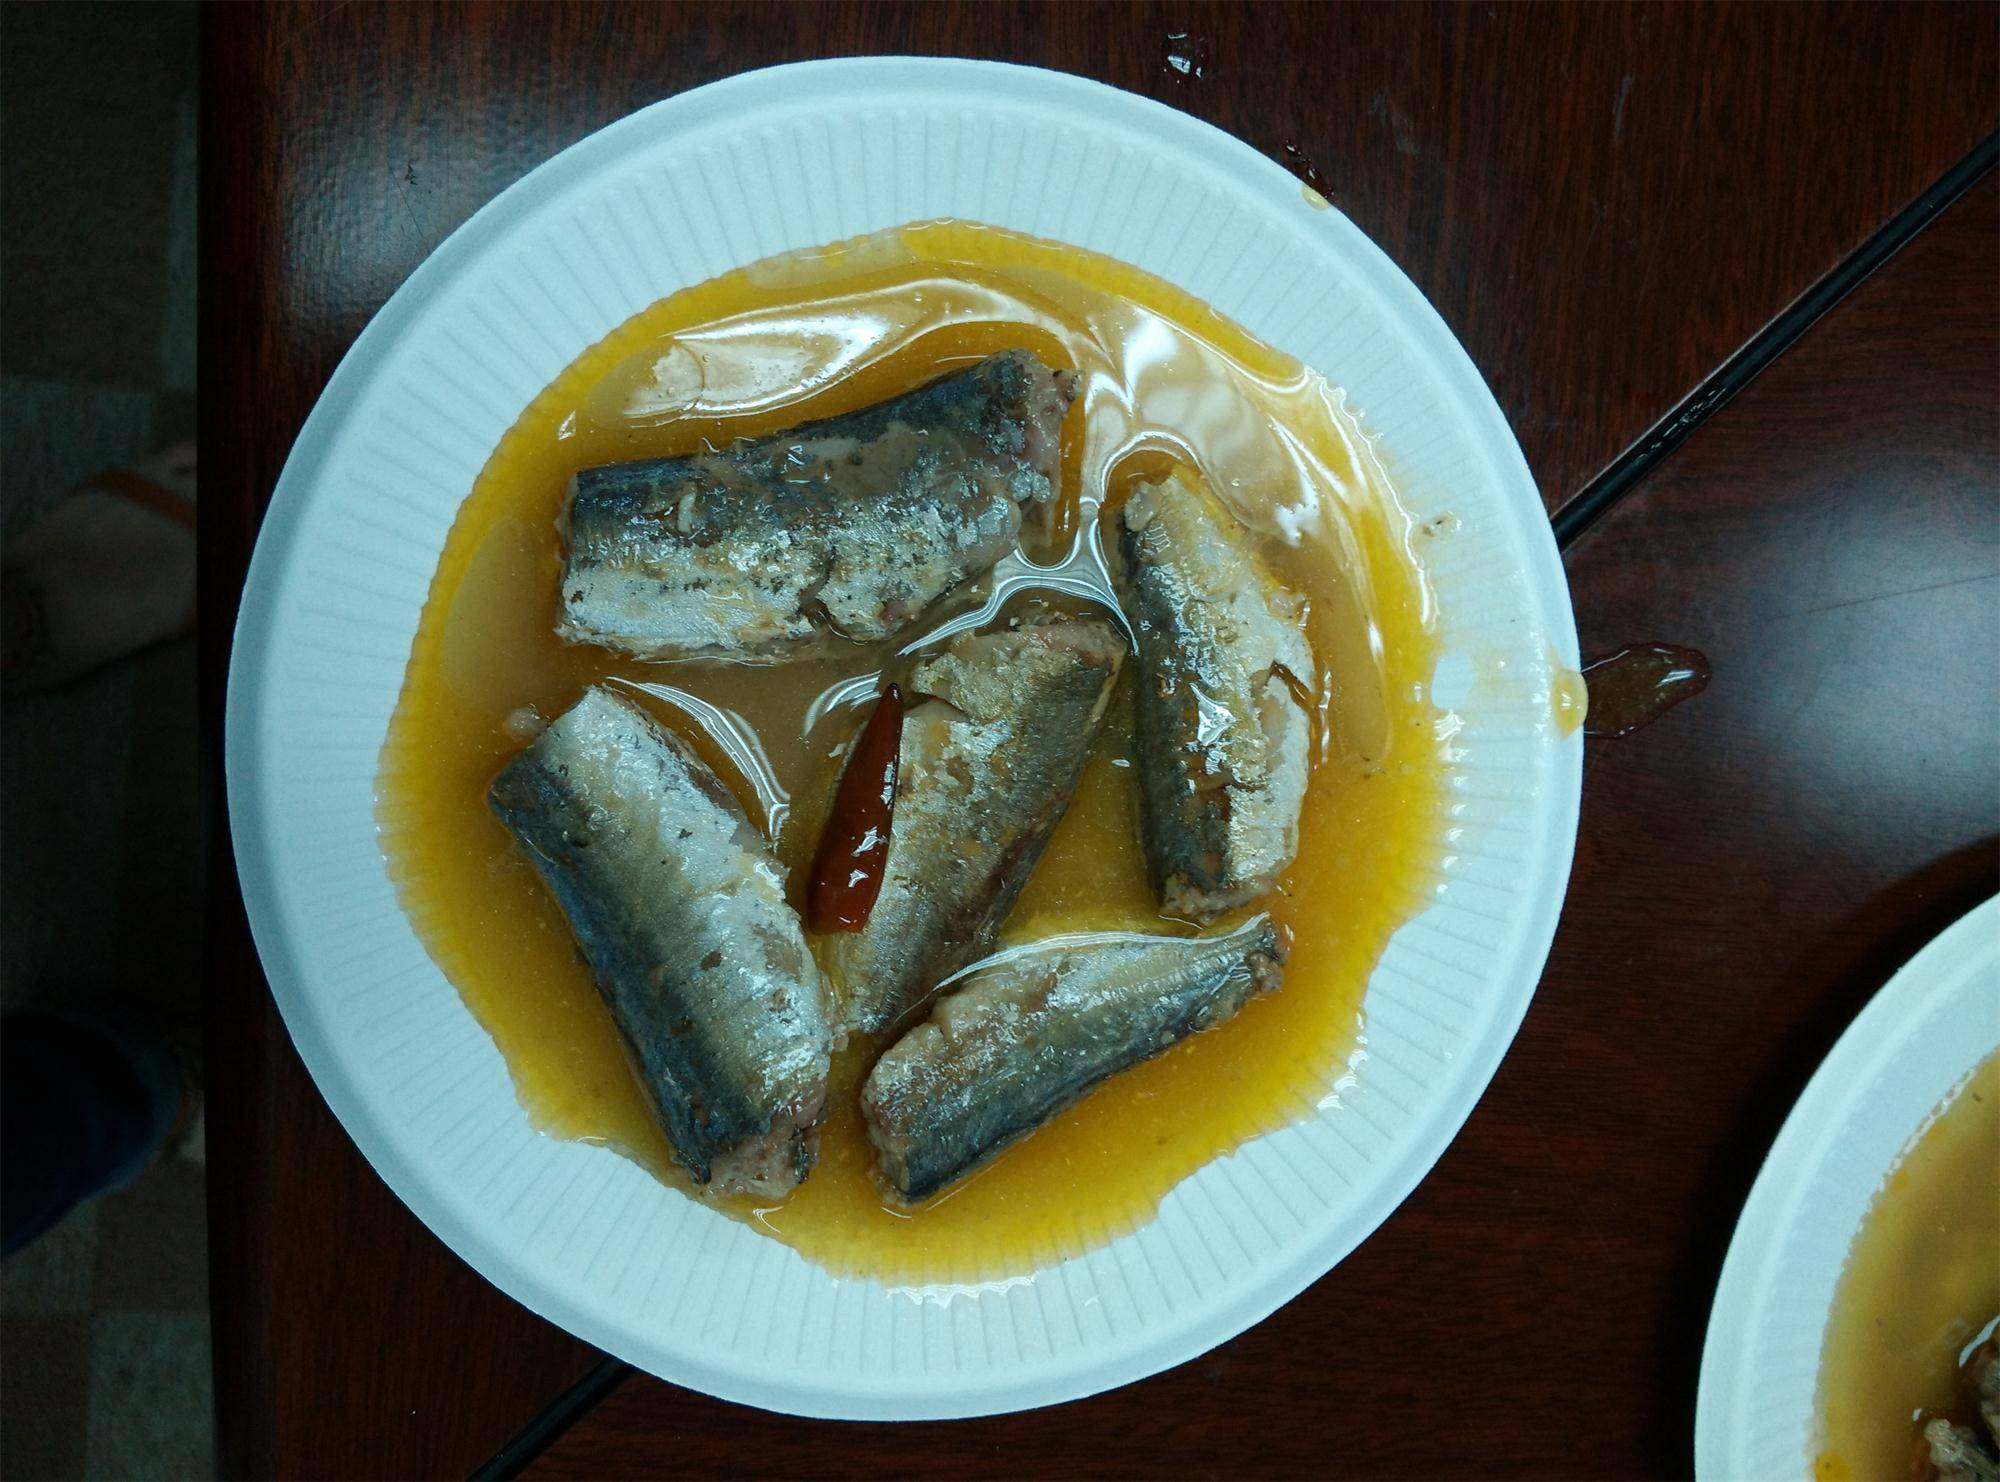 425g/240 cannedJack Mackerel in Oil,canned fish manufatcurer, cylinder can, halal, haccp certificate